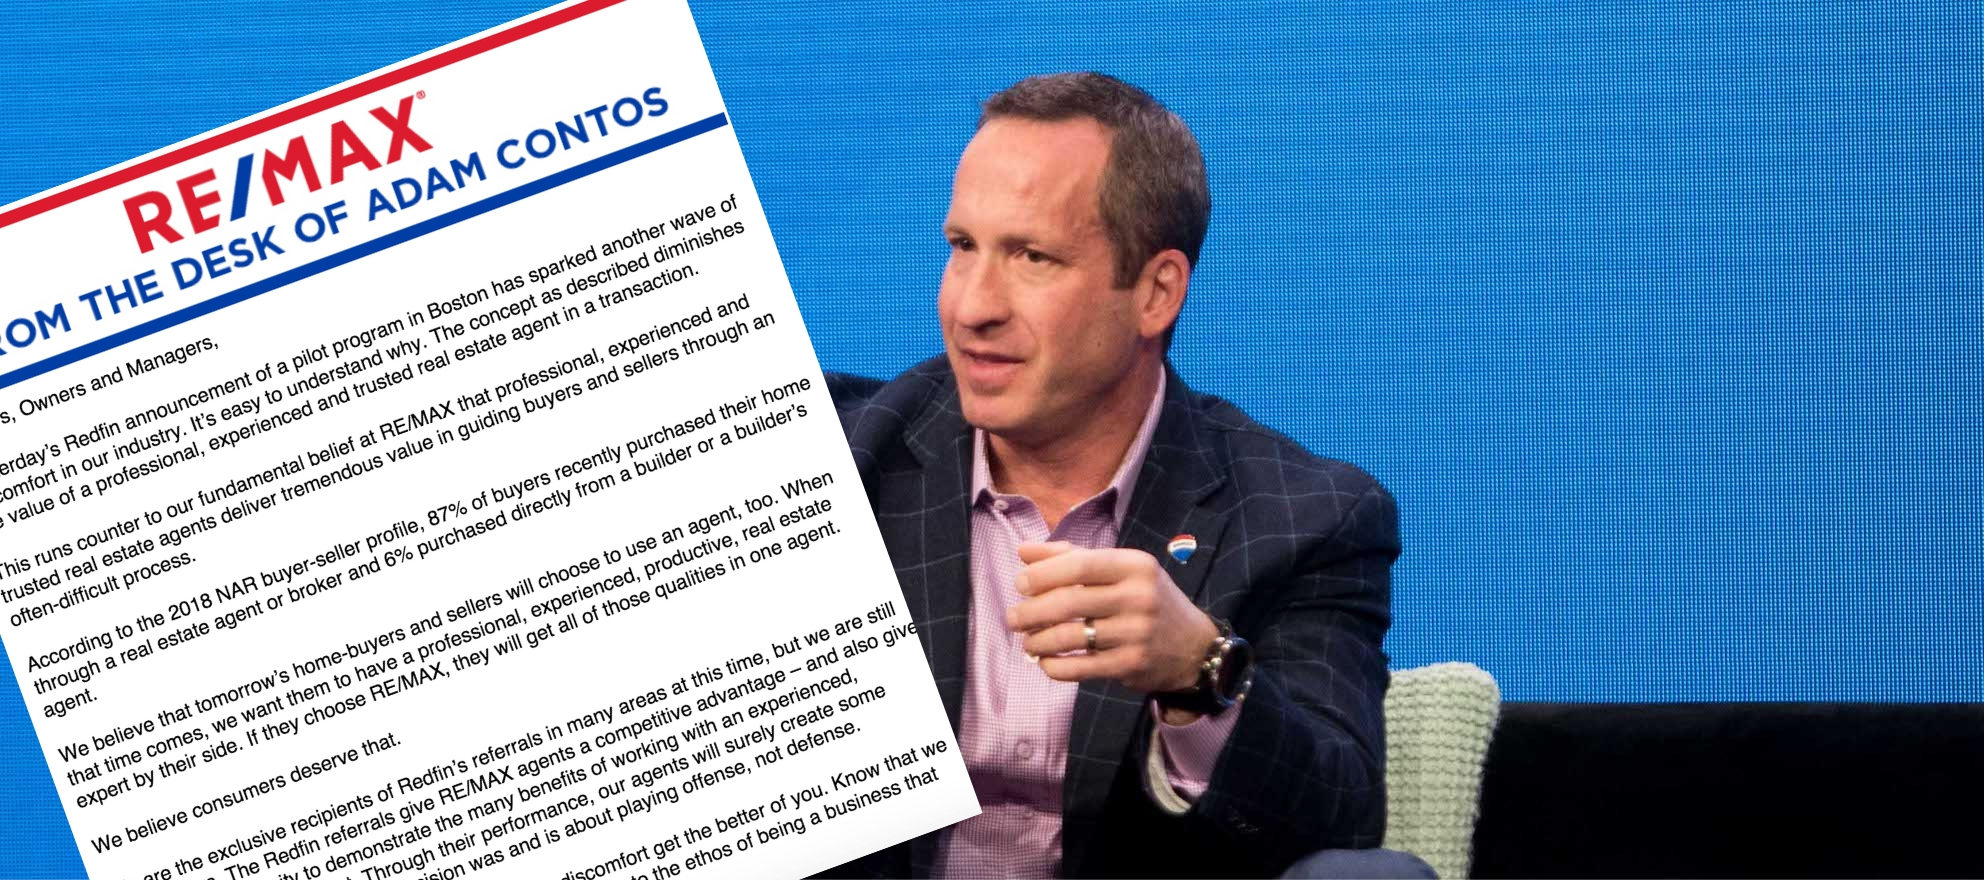 RE/MAX CEO addresses Redfin Direct, referral partnership